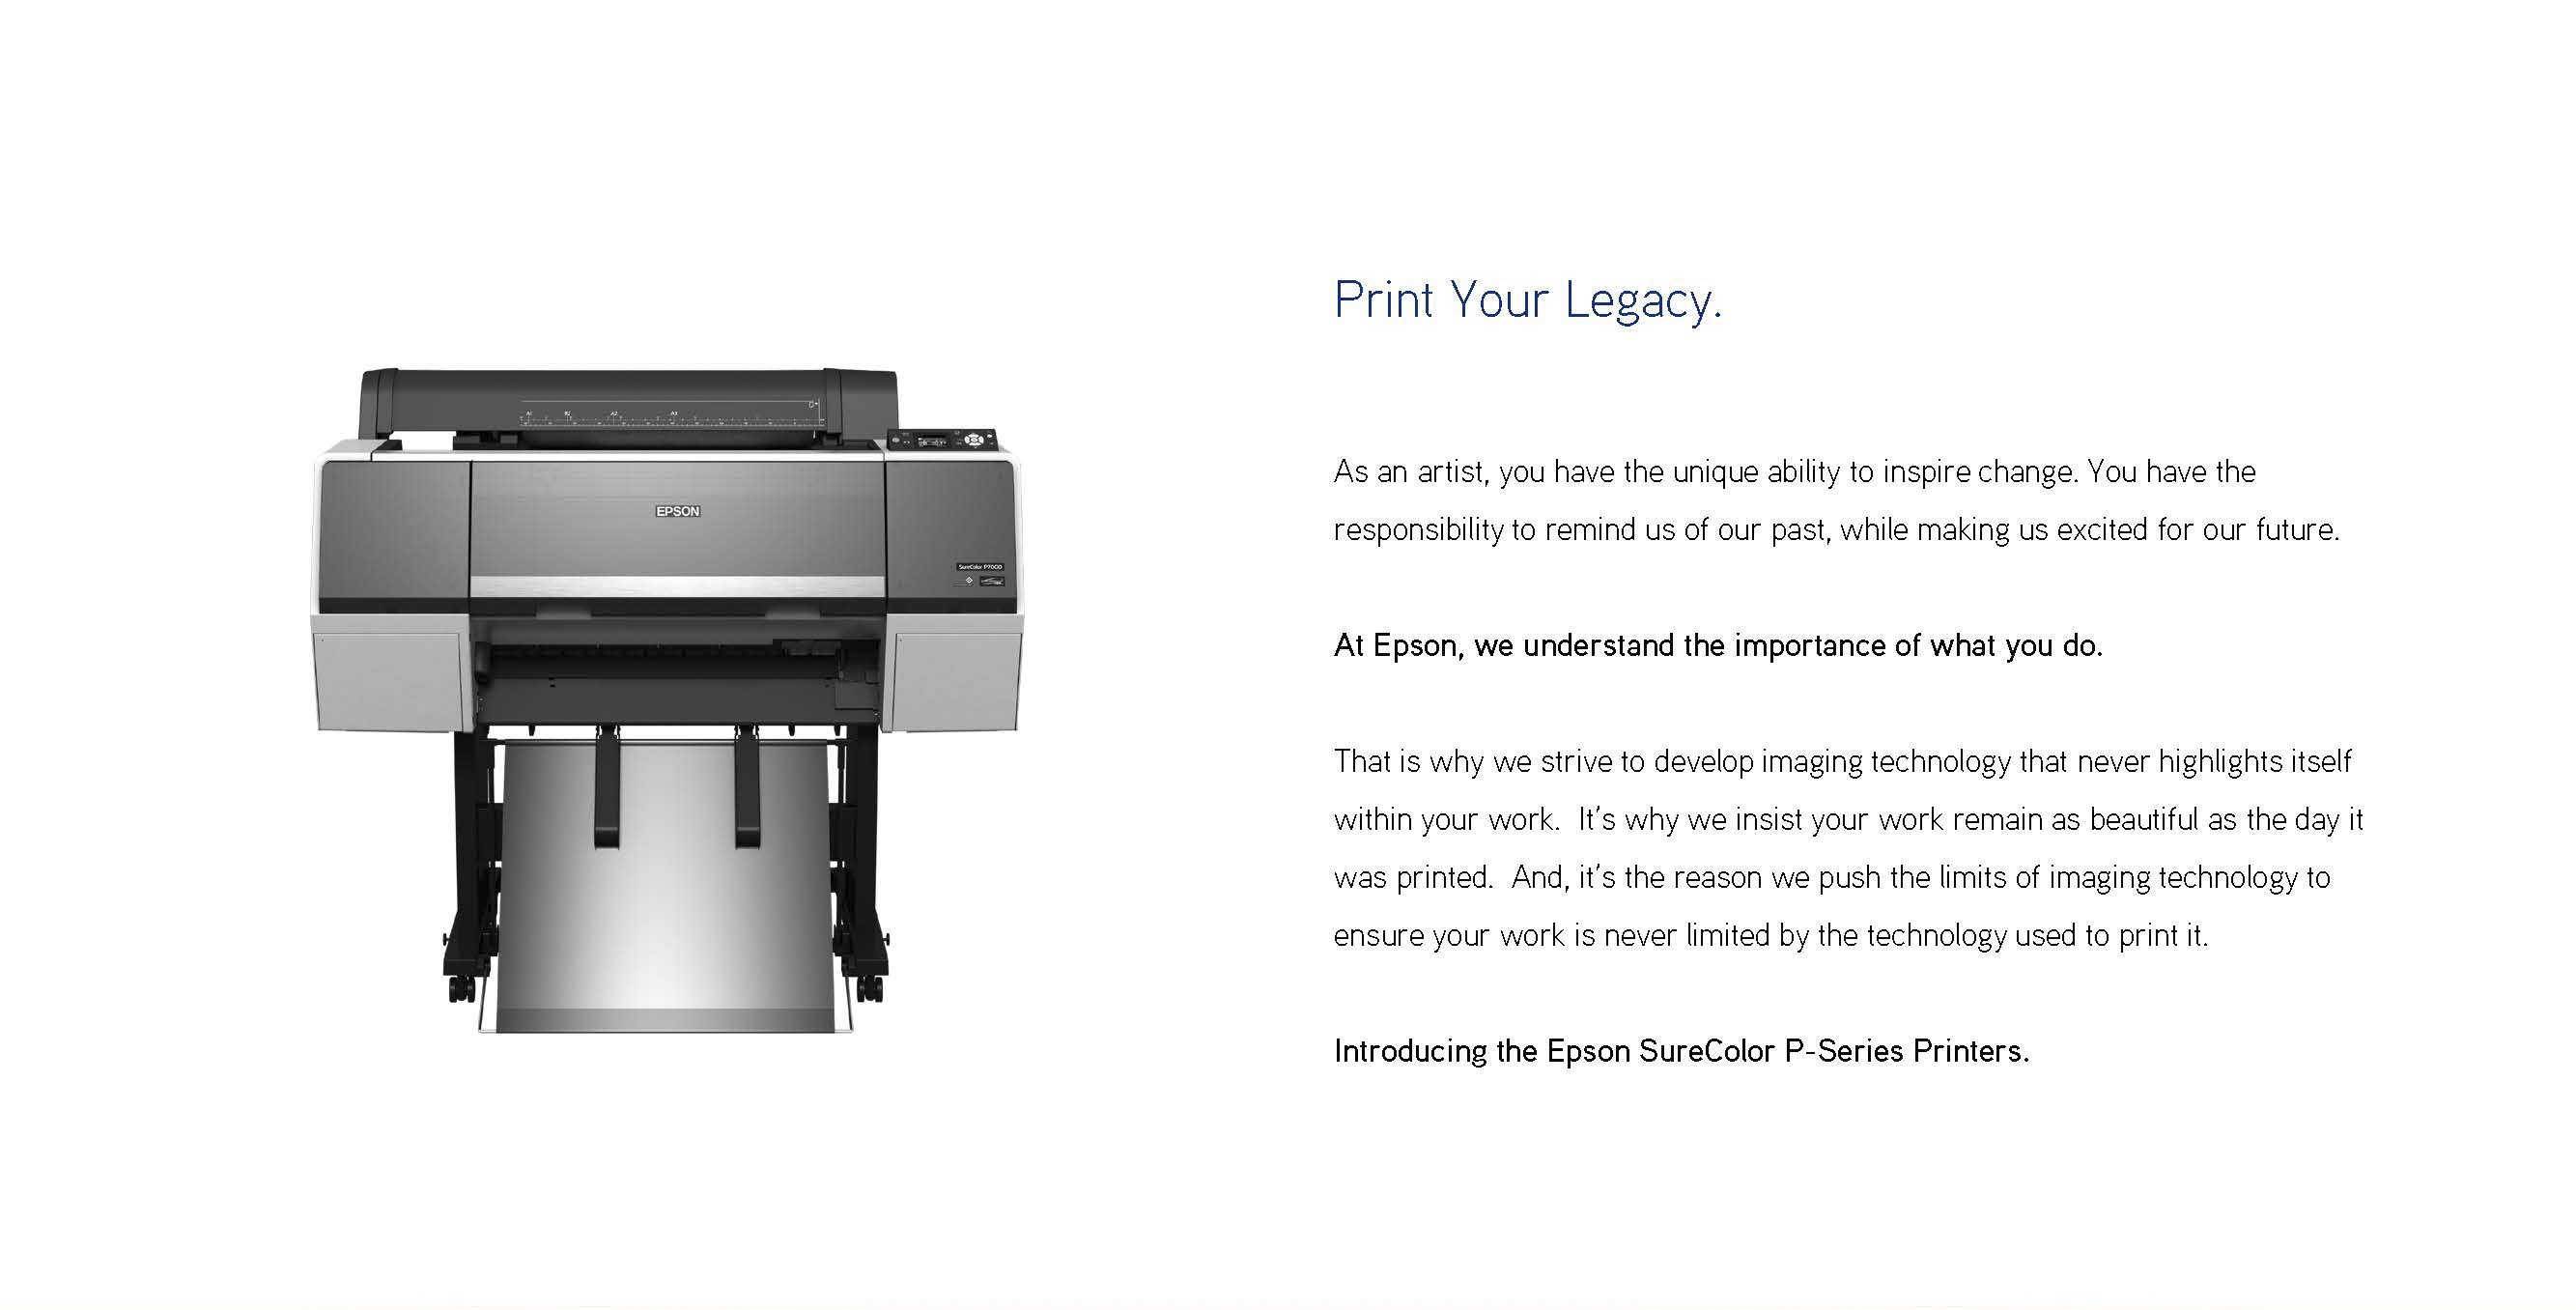 print your legacy